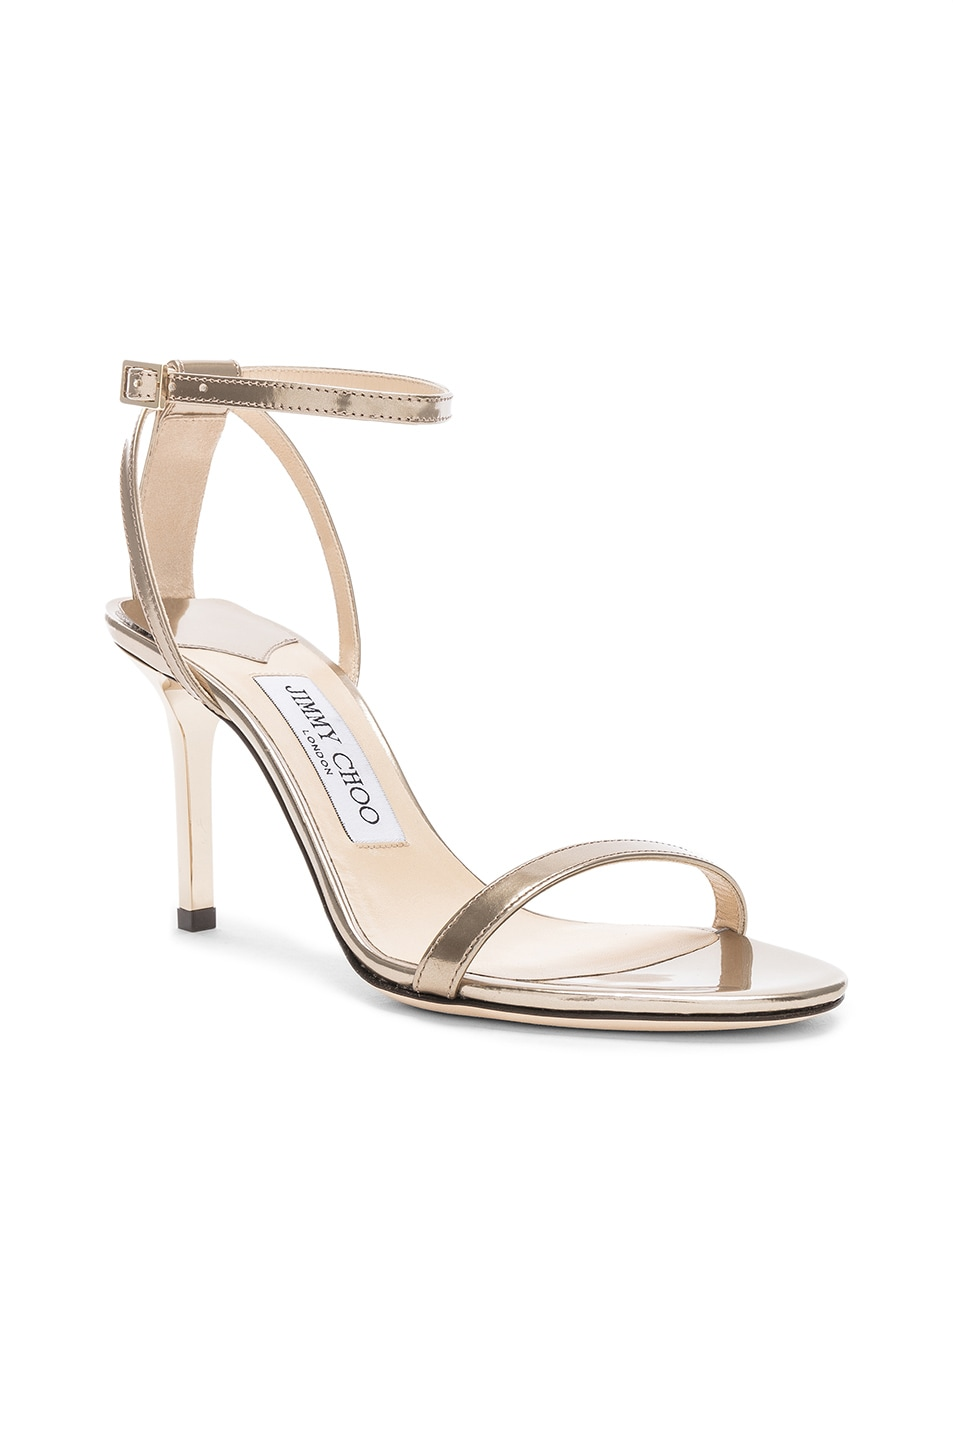 Image 2 of Jimmy Choo Minny 85 Mirror Leather Sandal in Gold